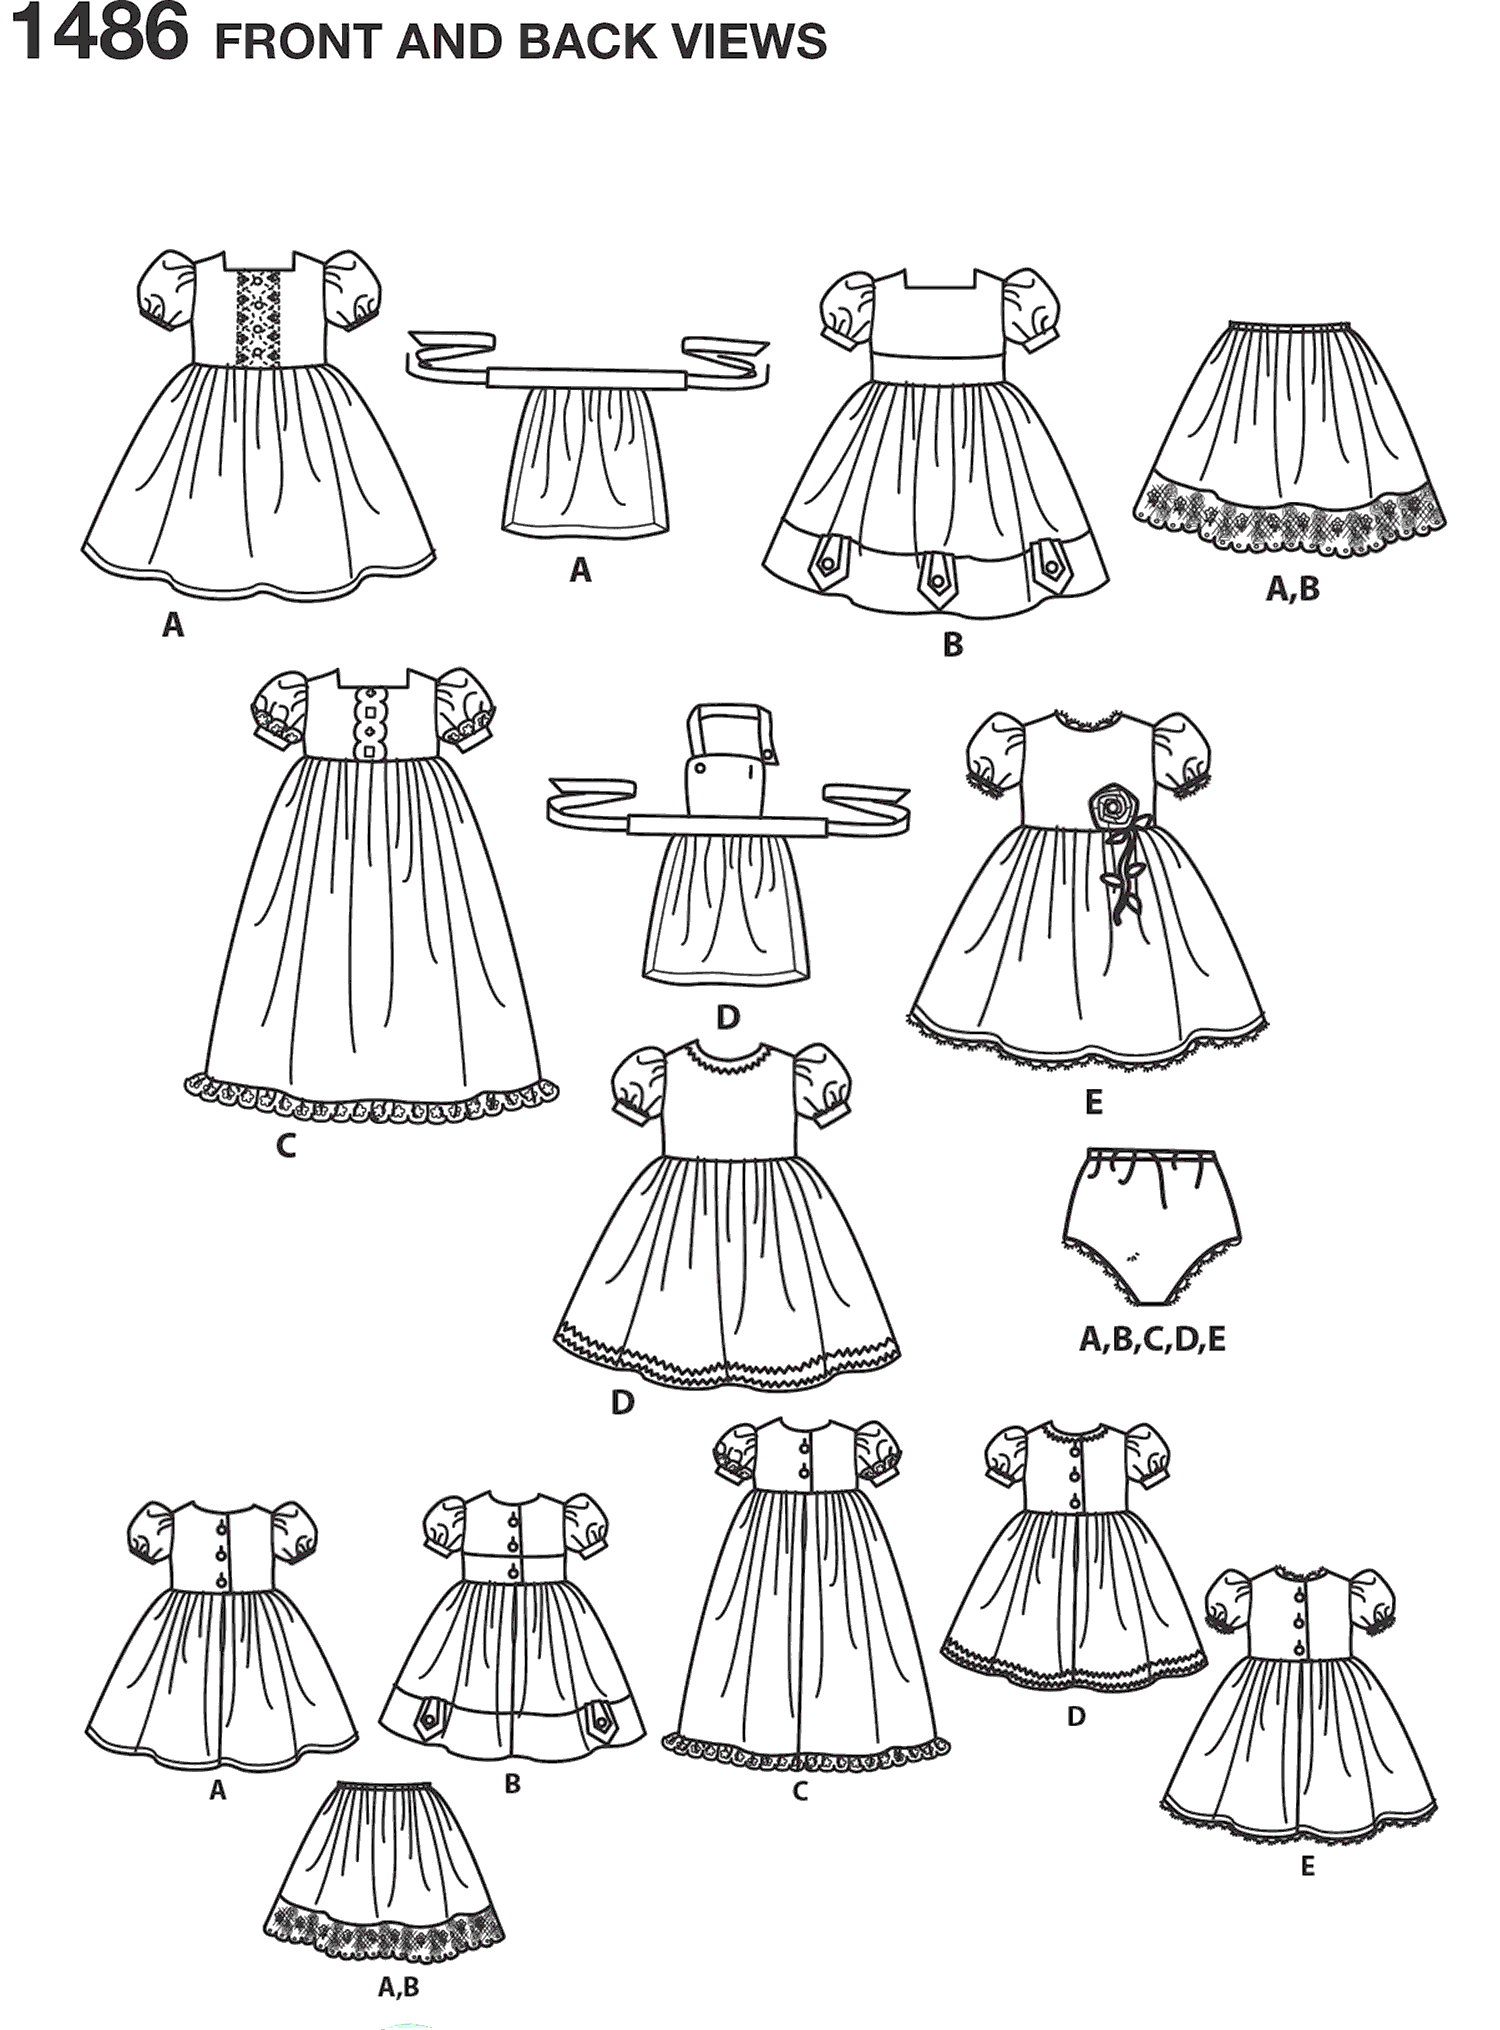 Simplicity Pattern 1486 Vintage Style 18 Doll Clothes Line Art From Patternsandplains.com